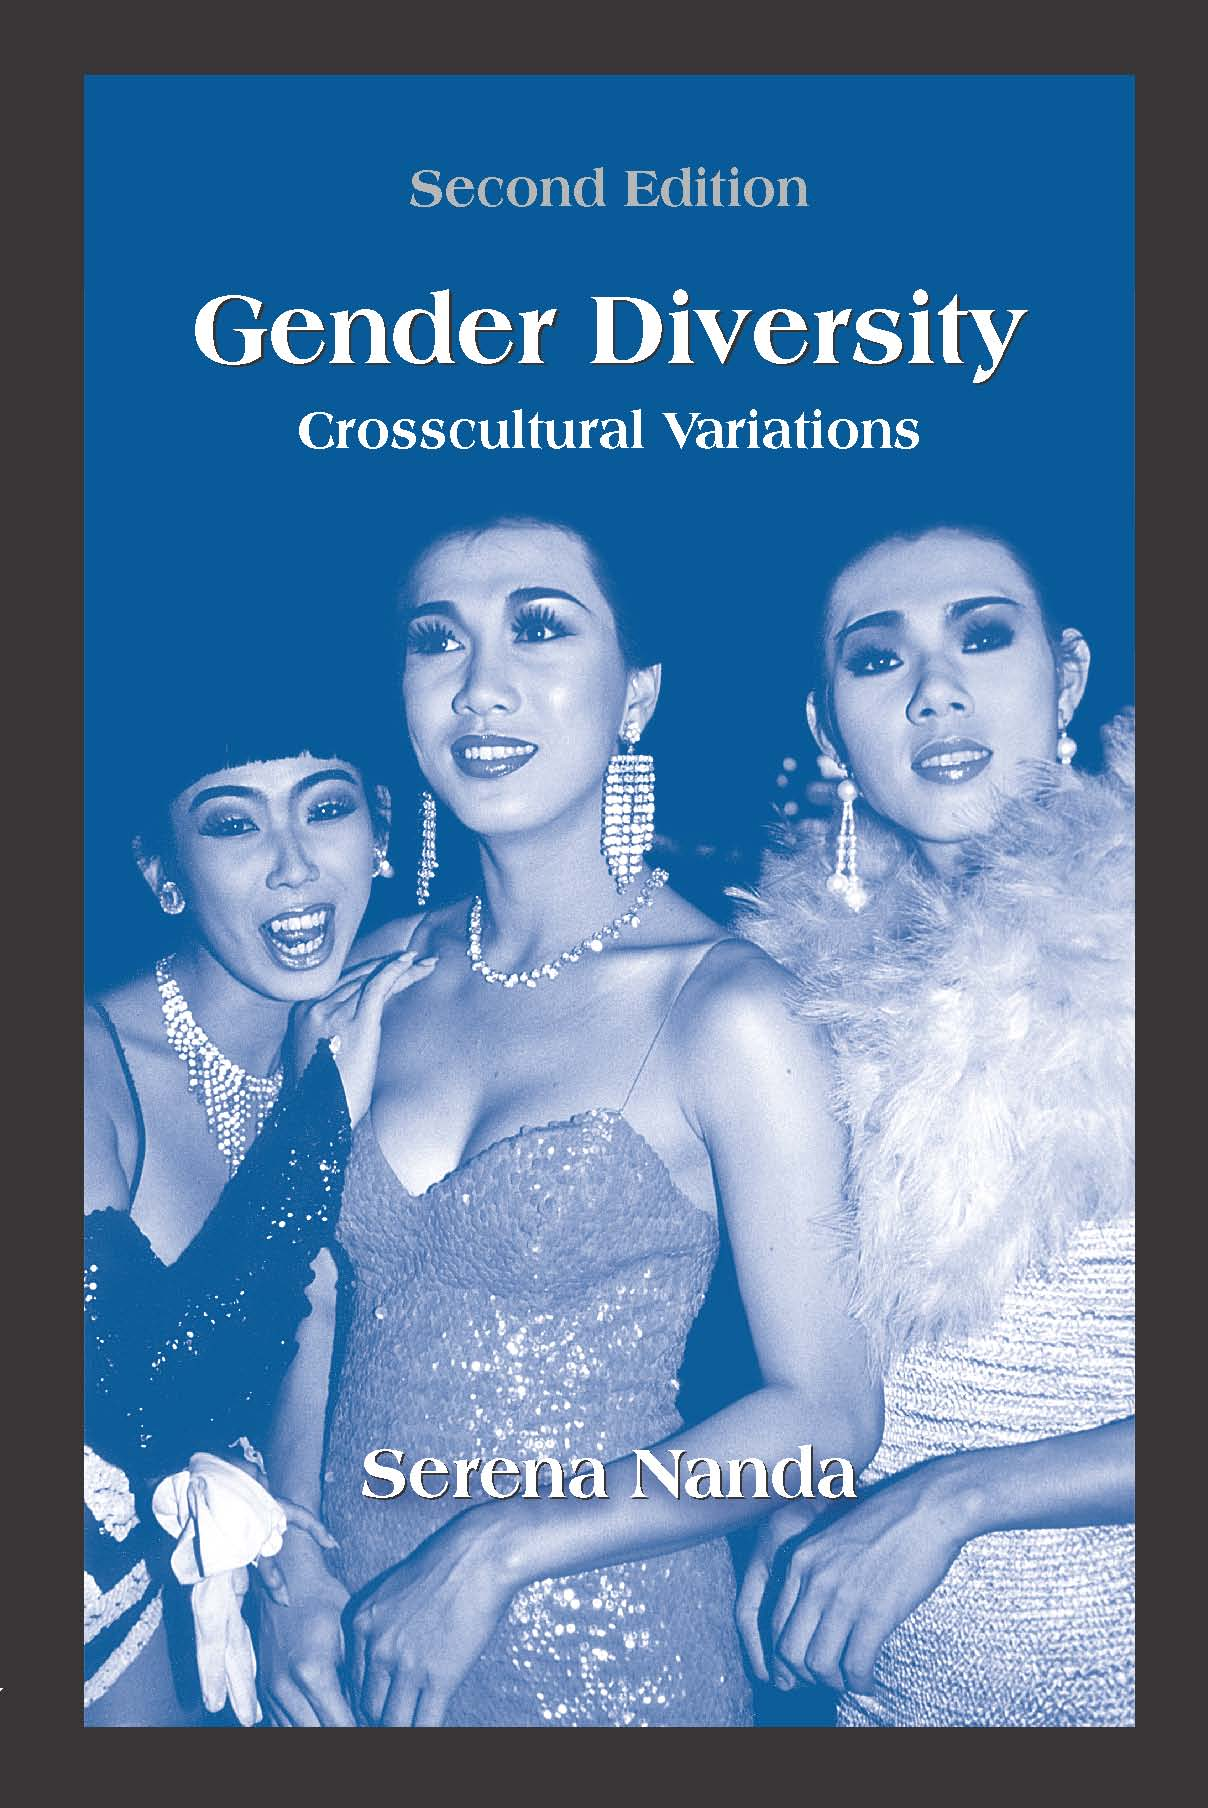 Gender Diversity: Crosscultural Variations by Serena  Nanda